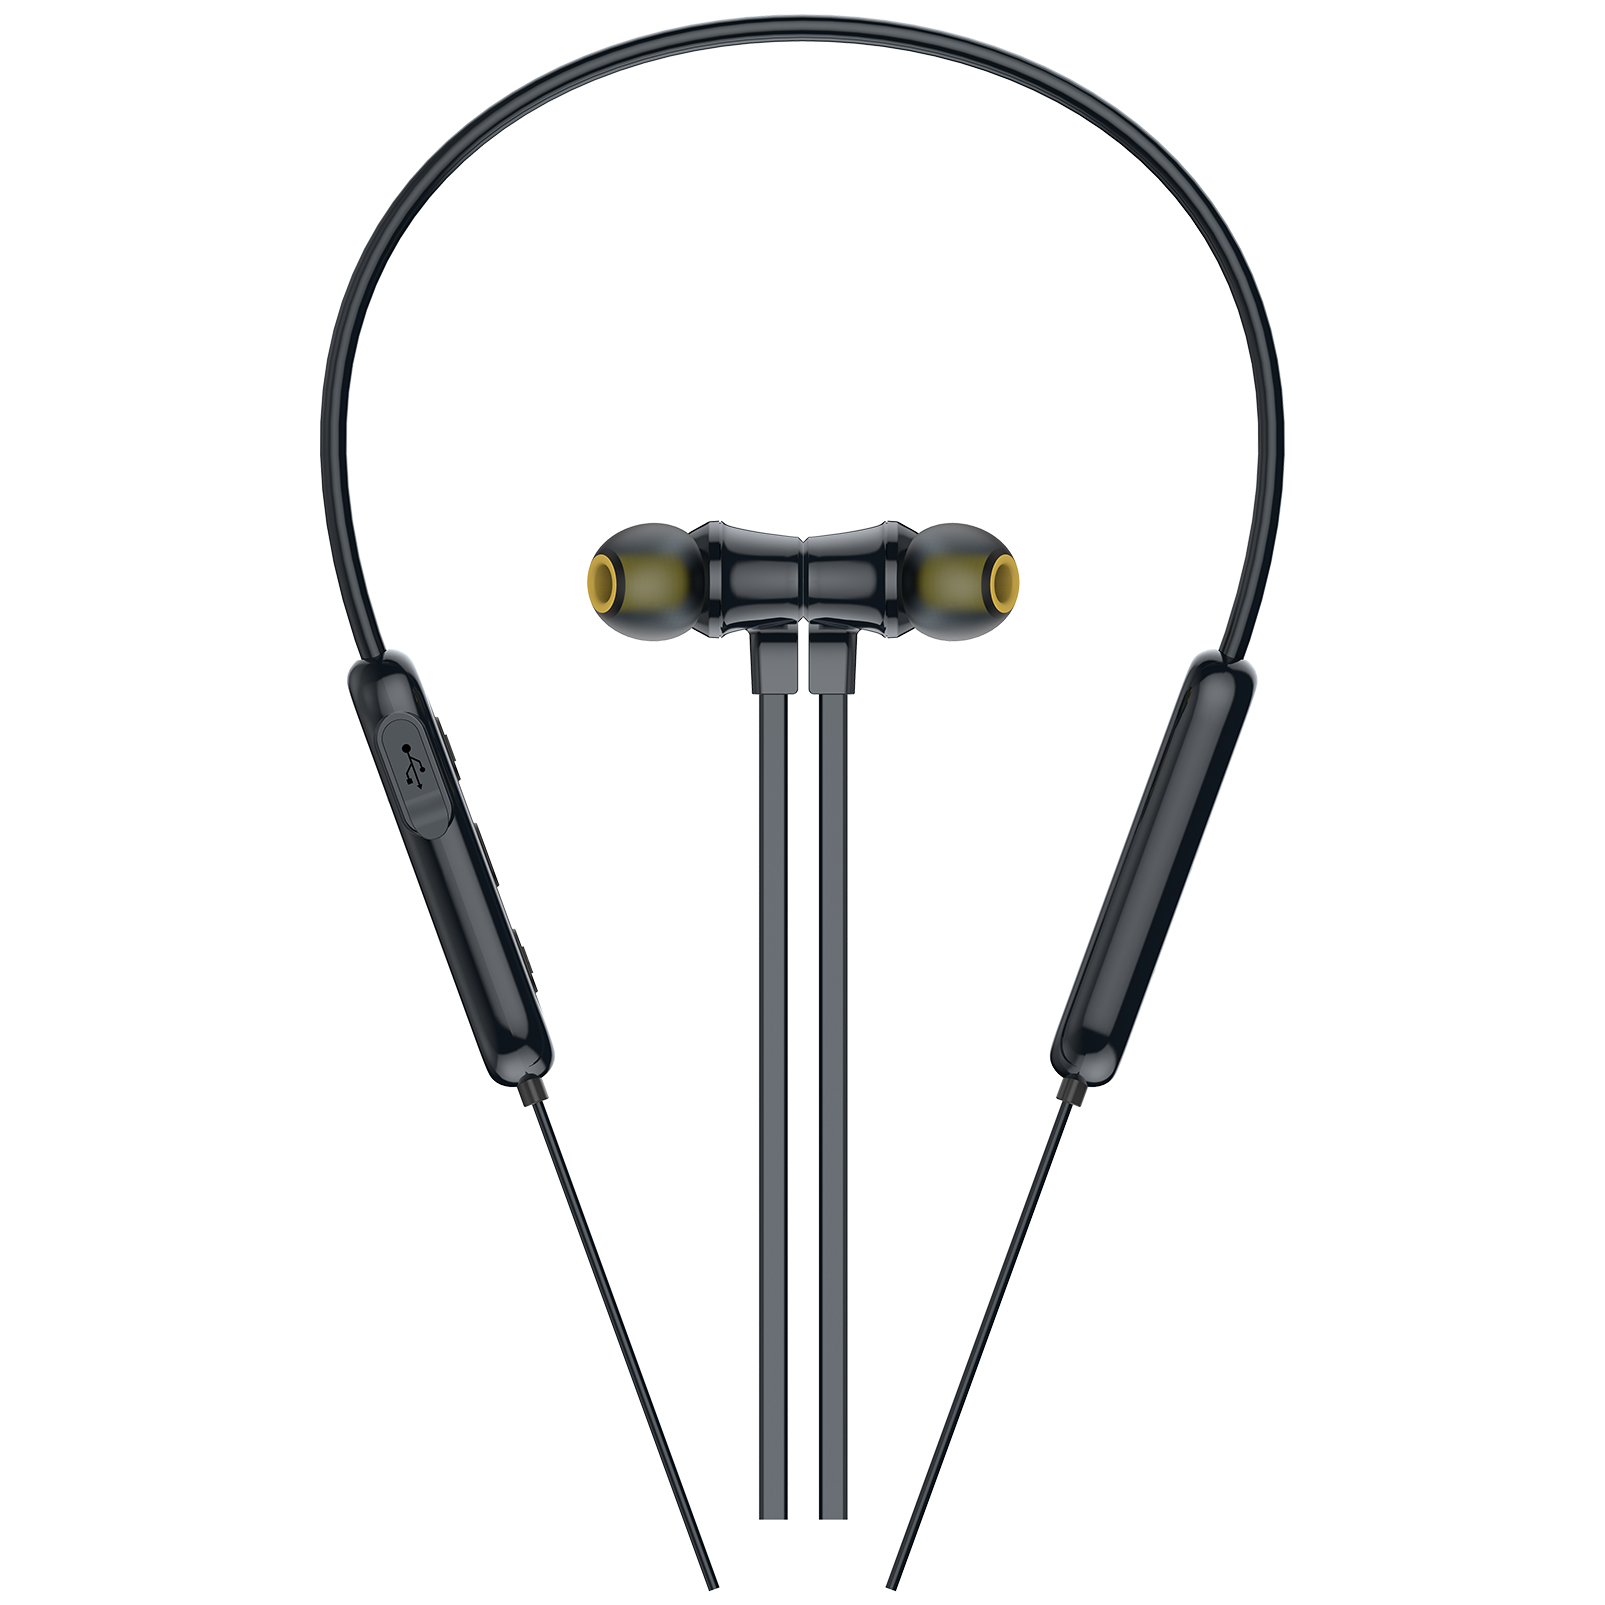 INFINITY GLIDE N100 - Black - In-Ear Ultra Light Neckband - Left